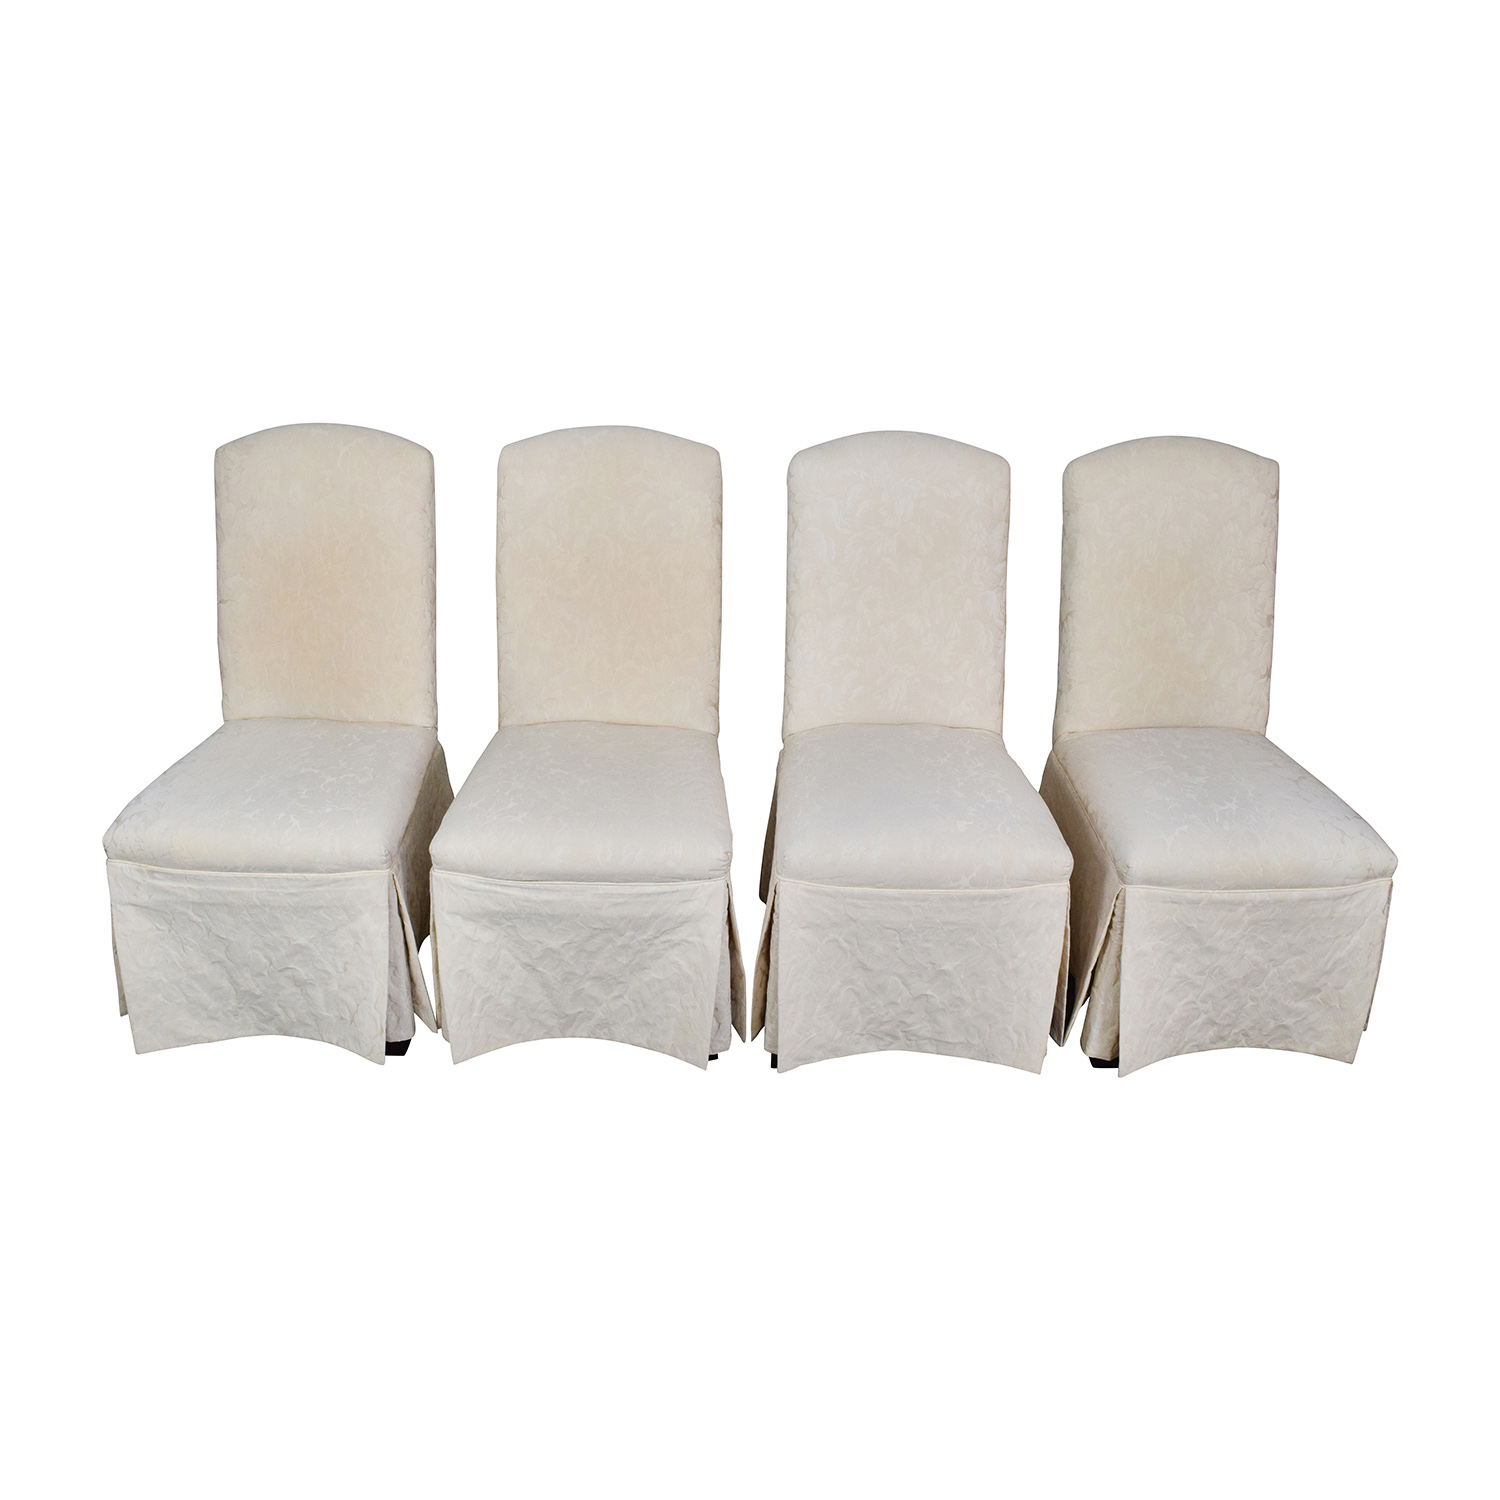 Upholstered Chairs For Dining Room Thomasville Leather Chair Upholstered Dining Room Chairs